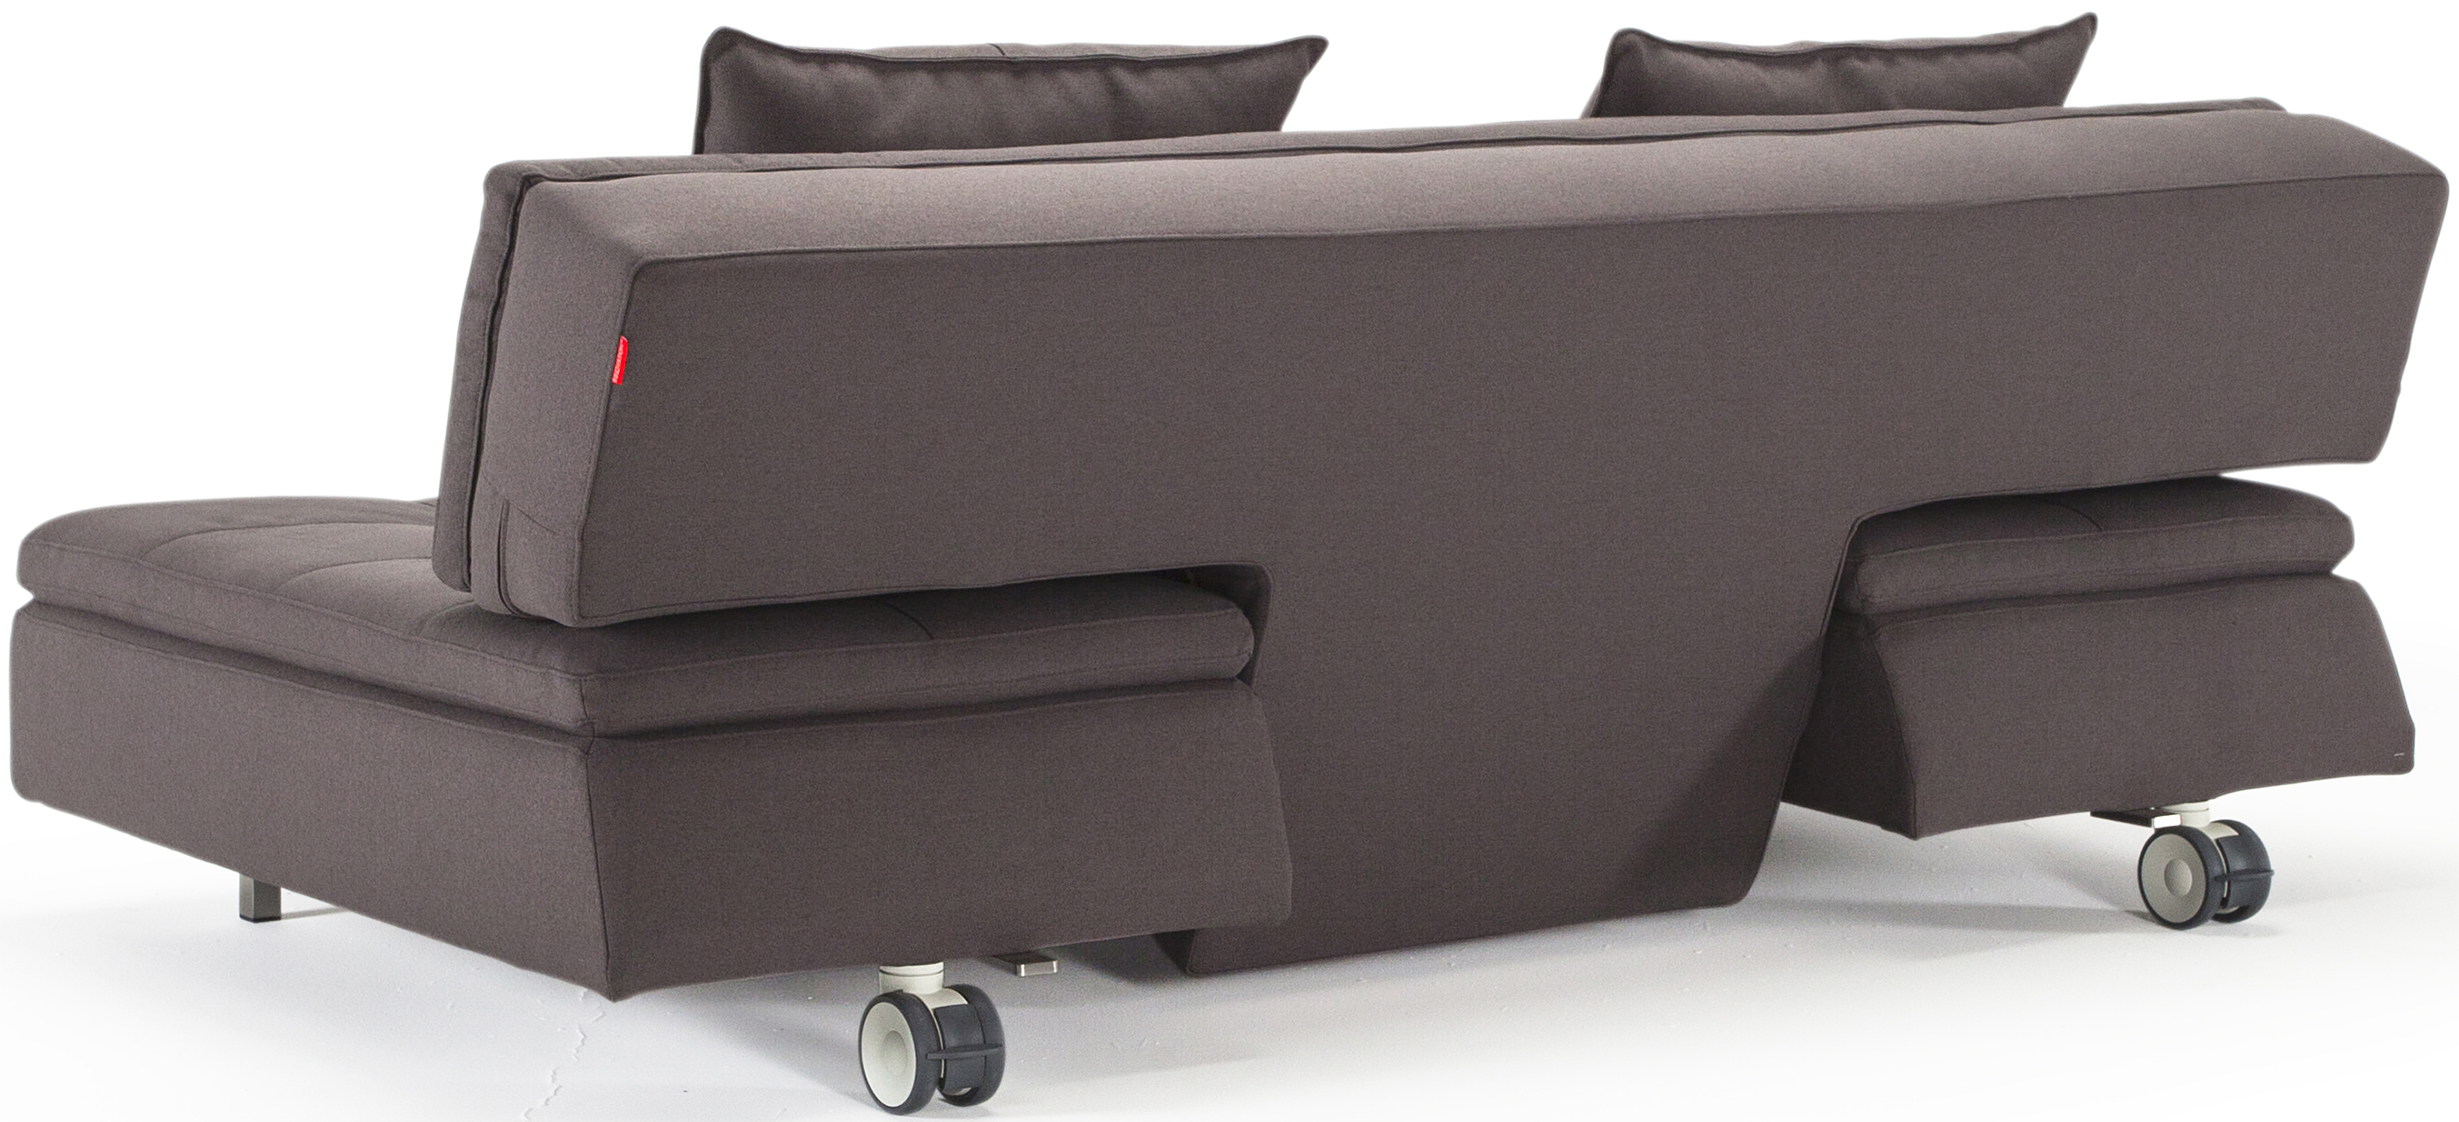 innovation long horn dual sofa